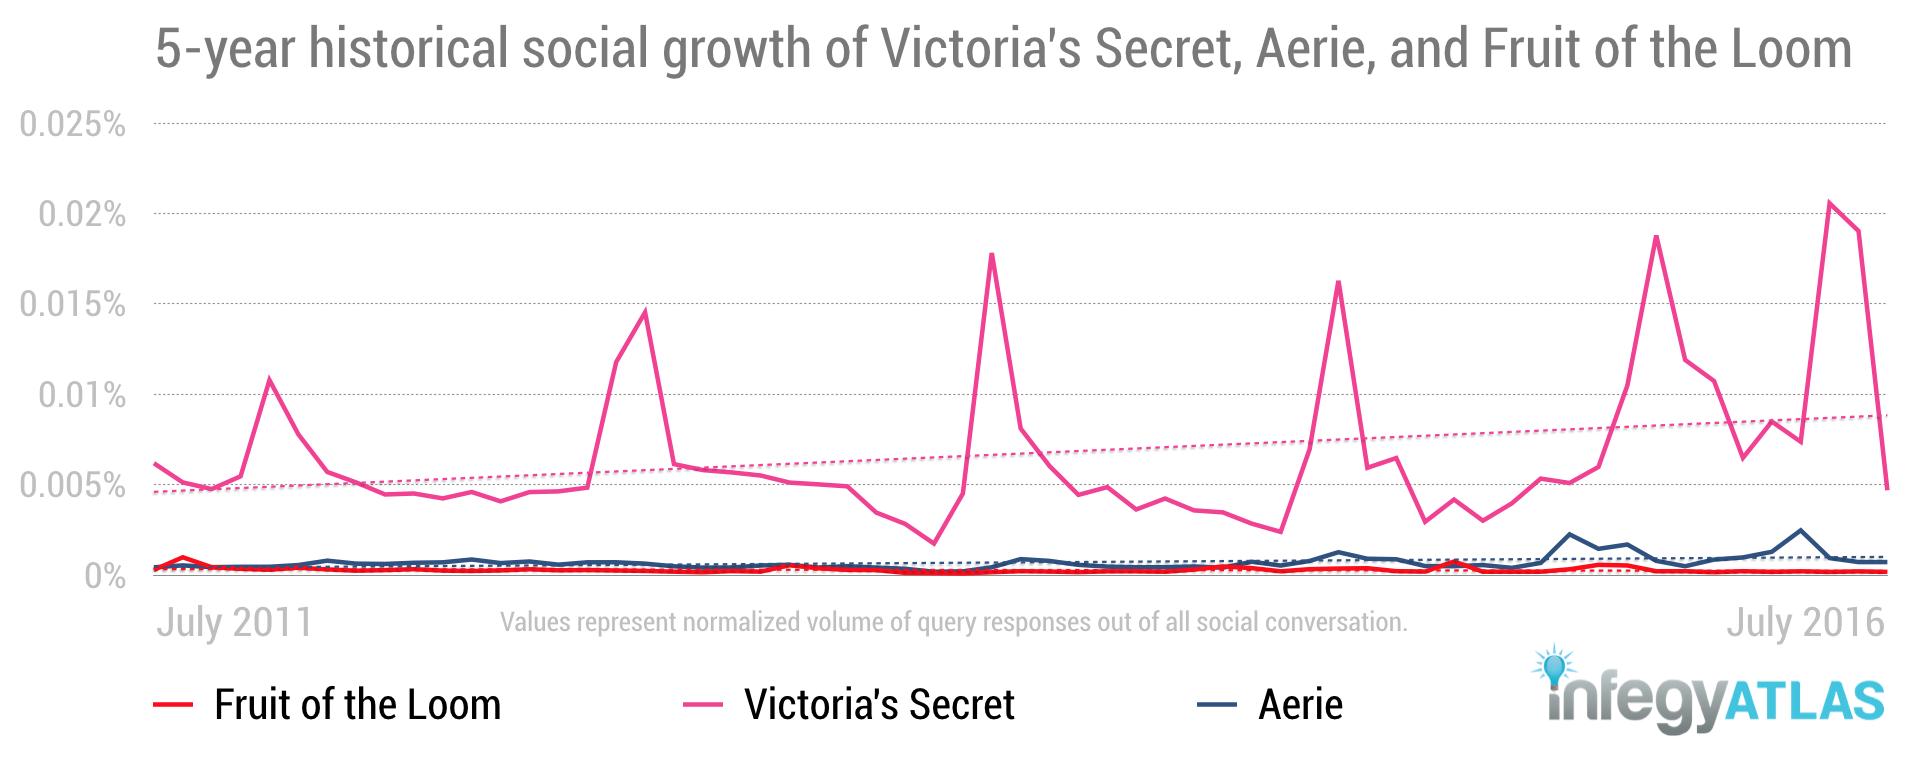 social-media-intelligence-victorias-secret-historical-data-comparison.png